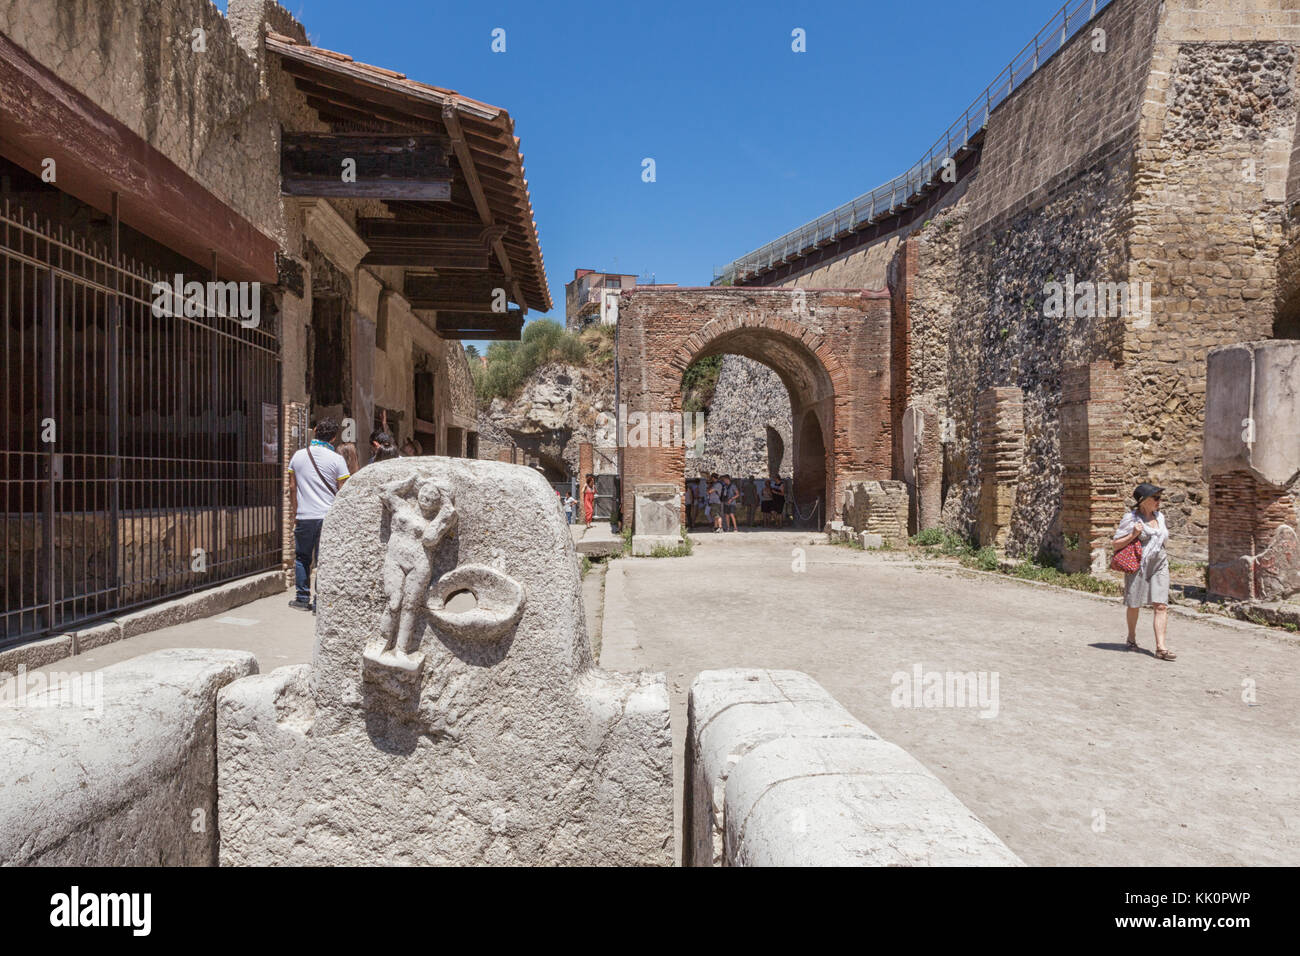 Ercolano (Italy) - Situated on a volcanic plateau overhanging the sea, Herculaneum is one of the most important - Stock Image